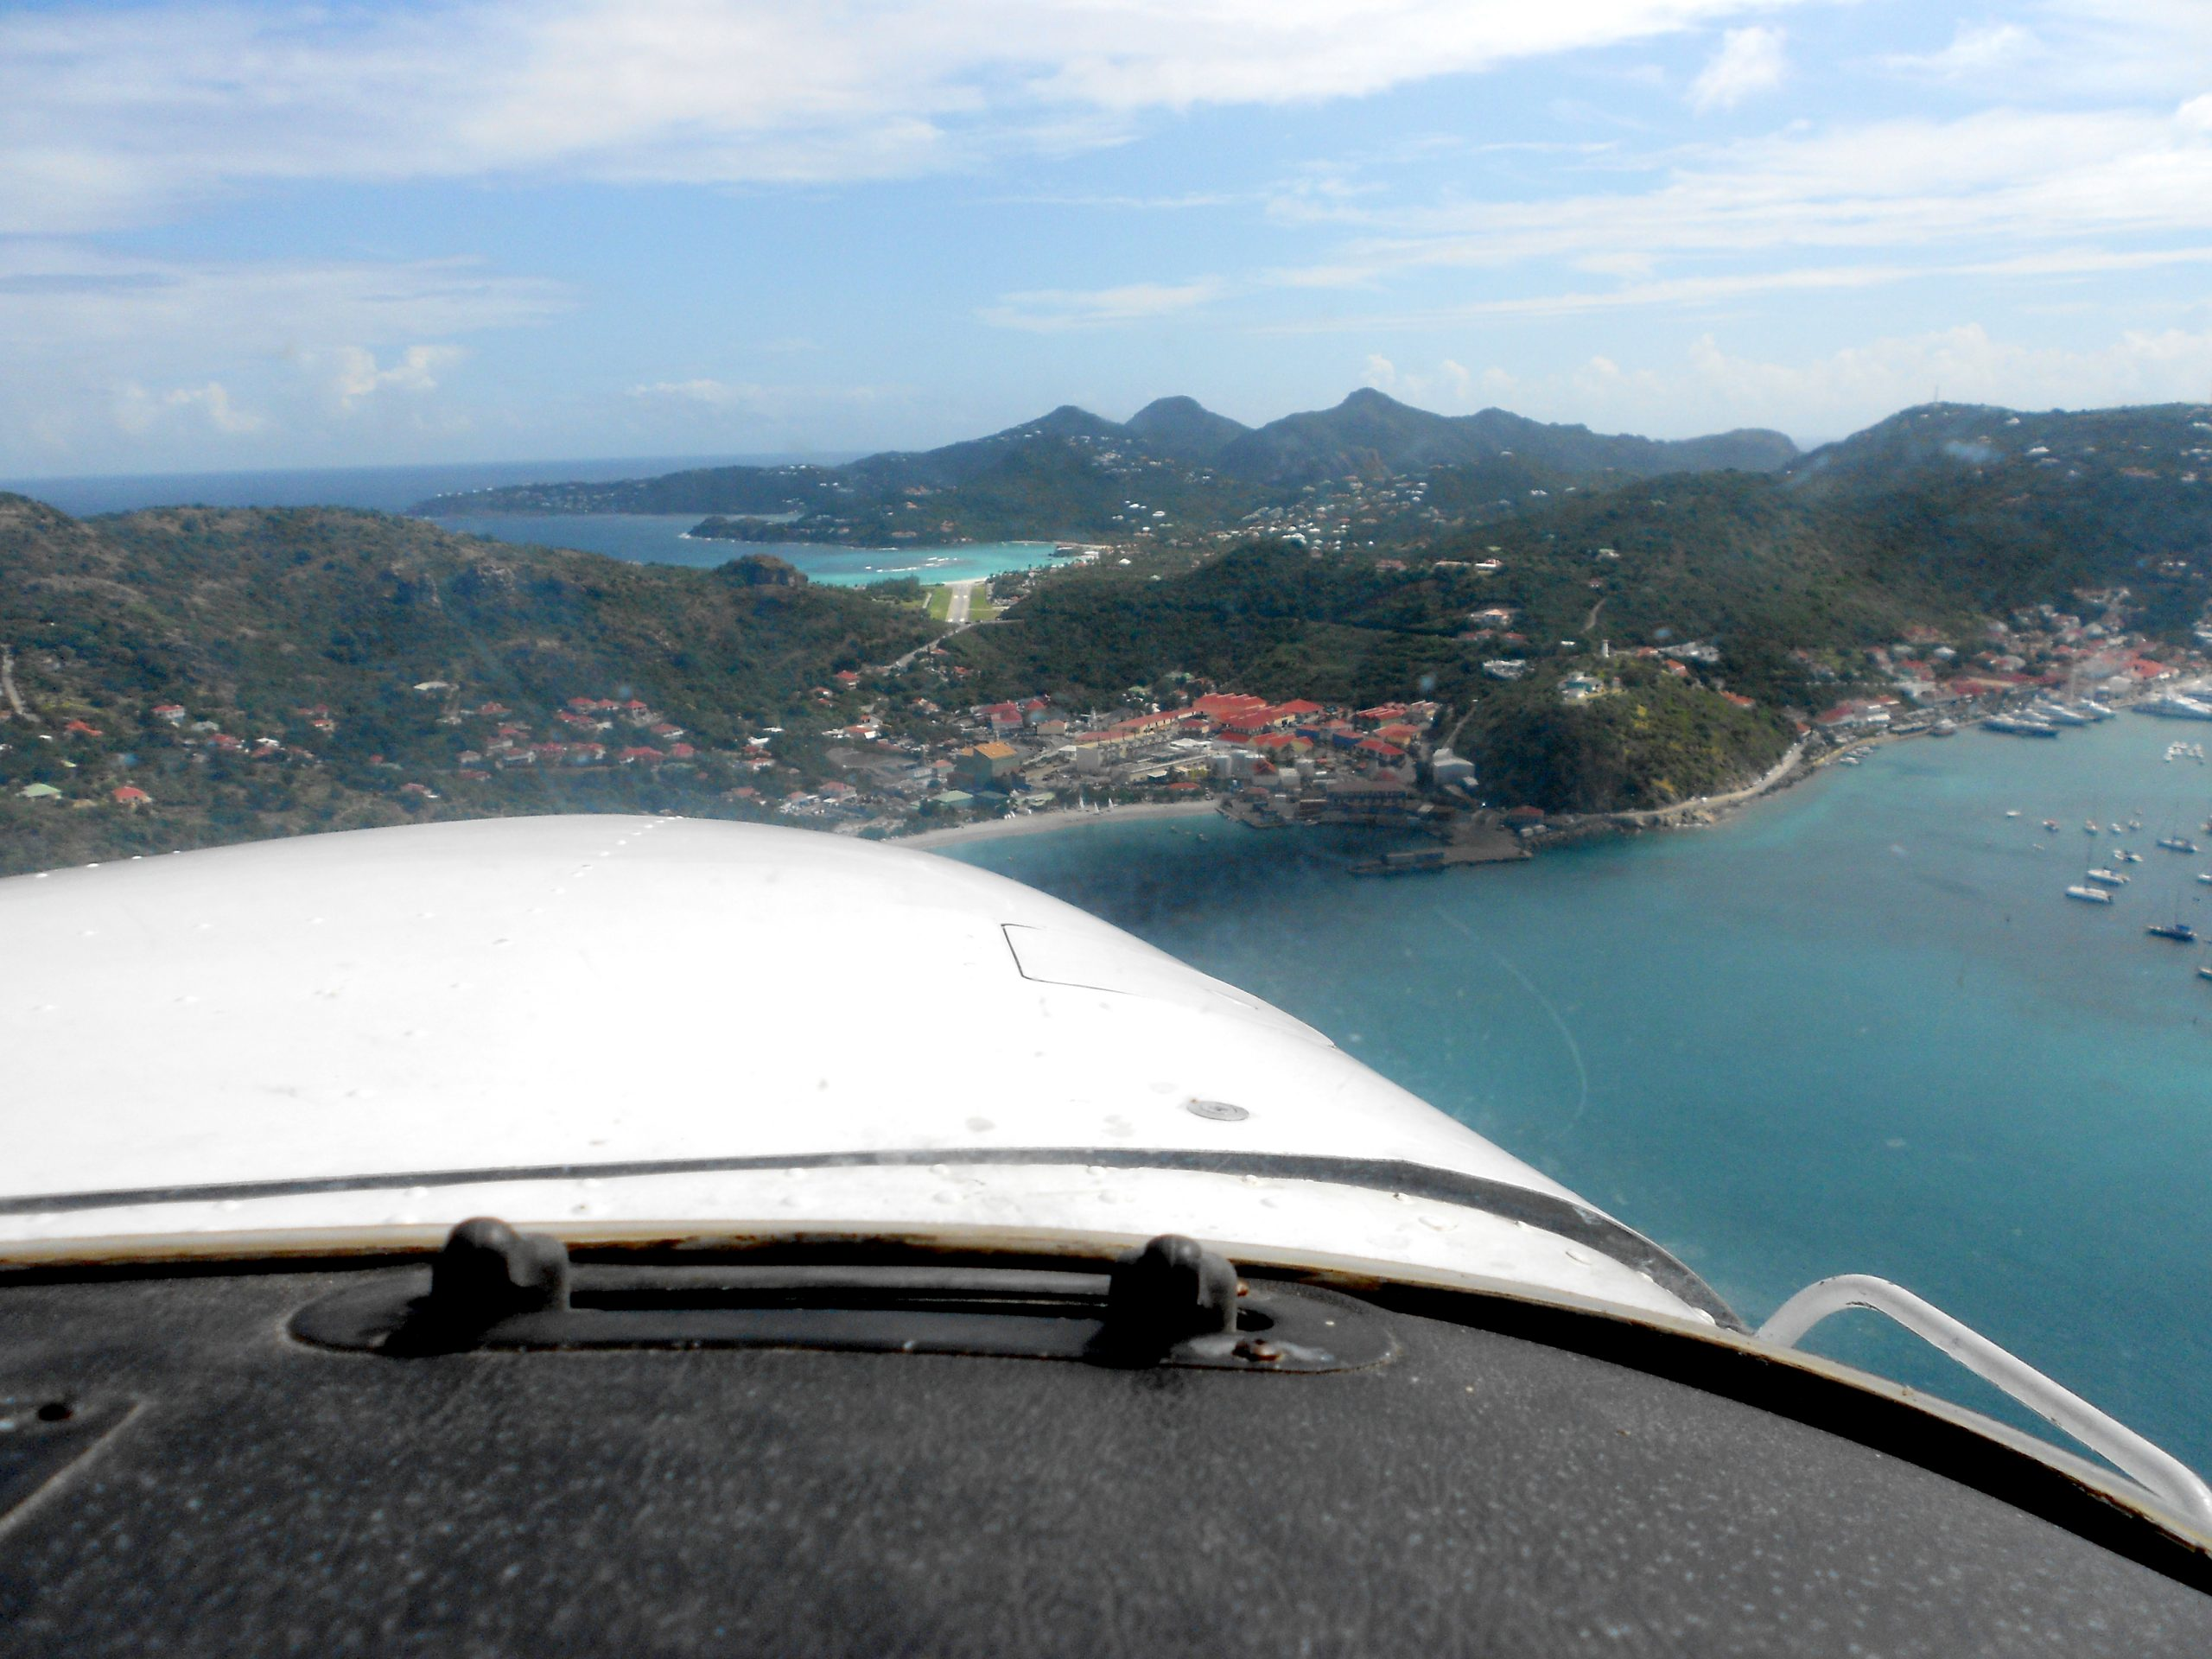 On glideslope at St Barts